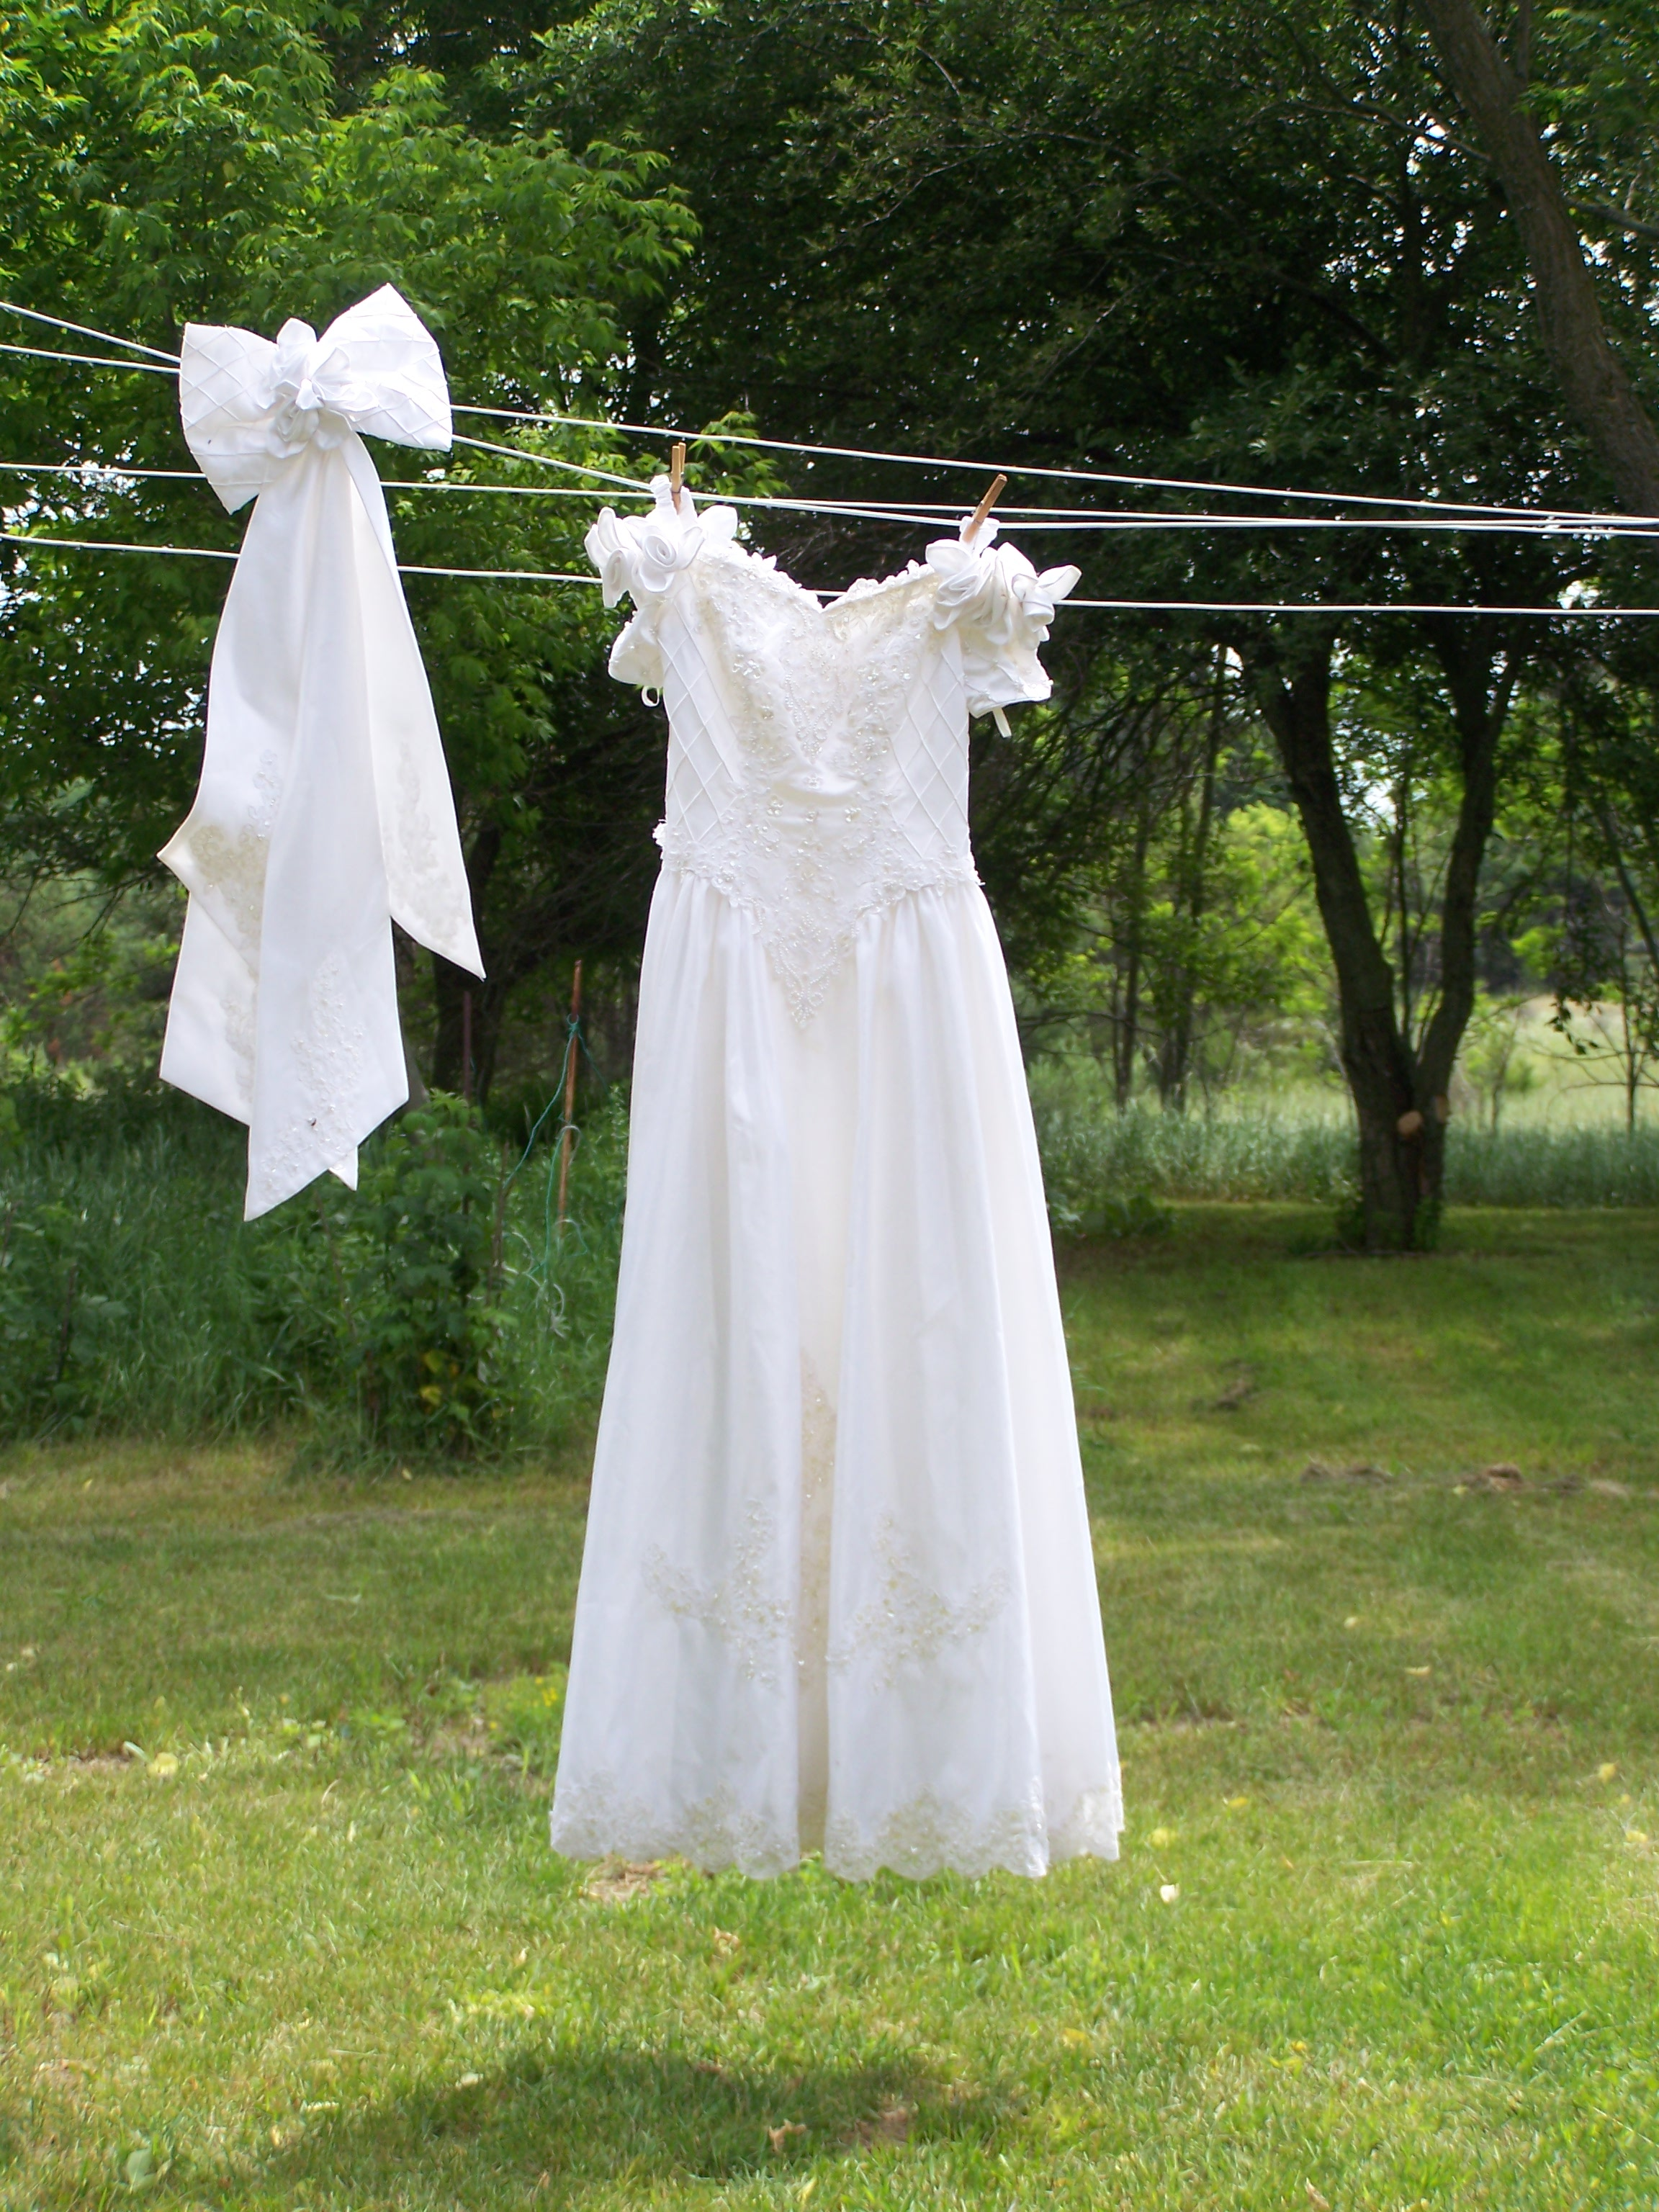 wedding dress on clothesline